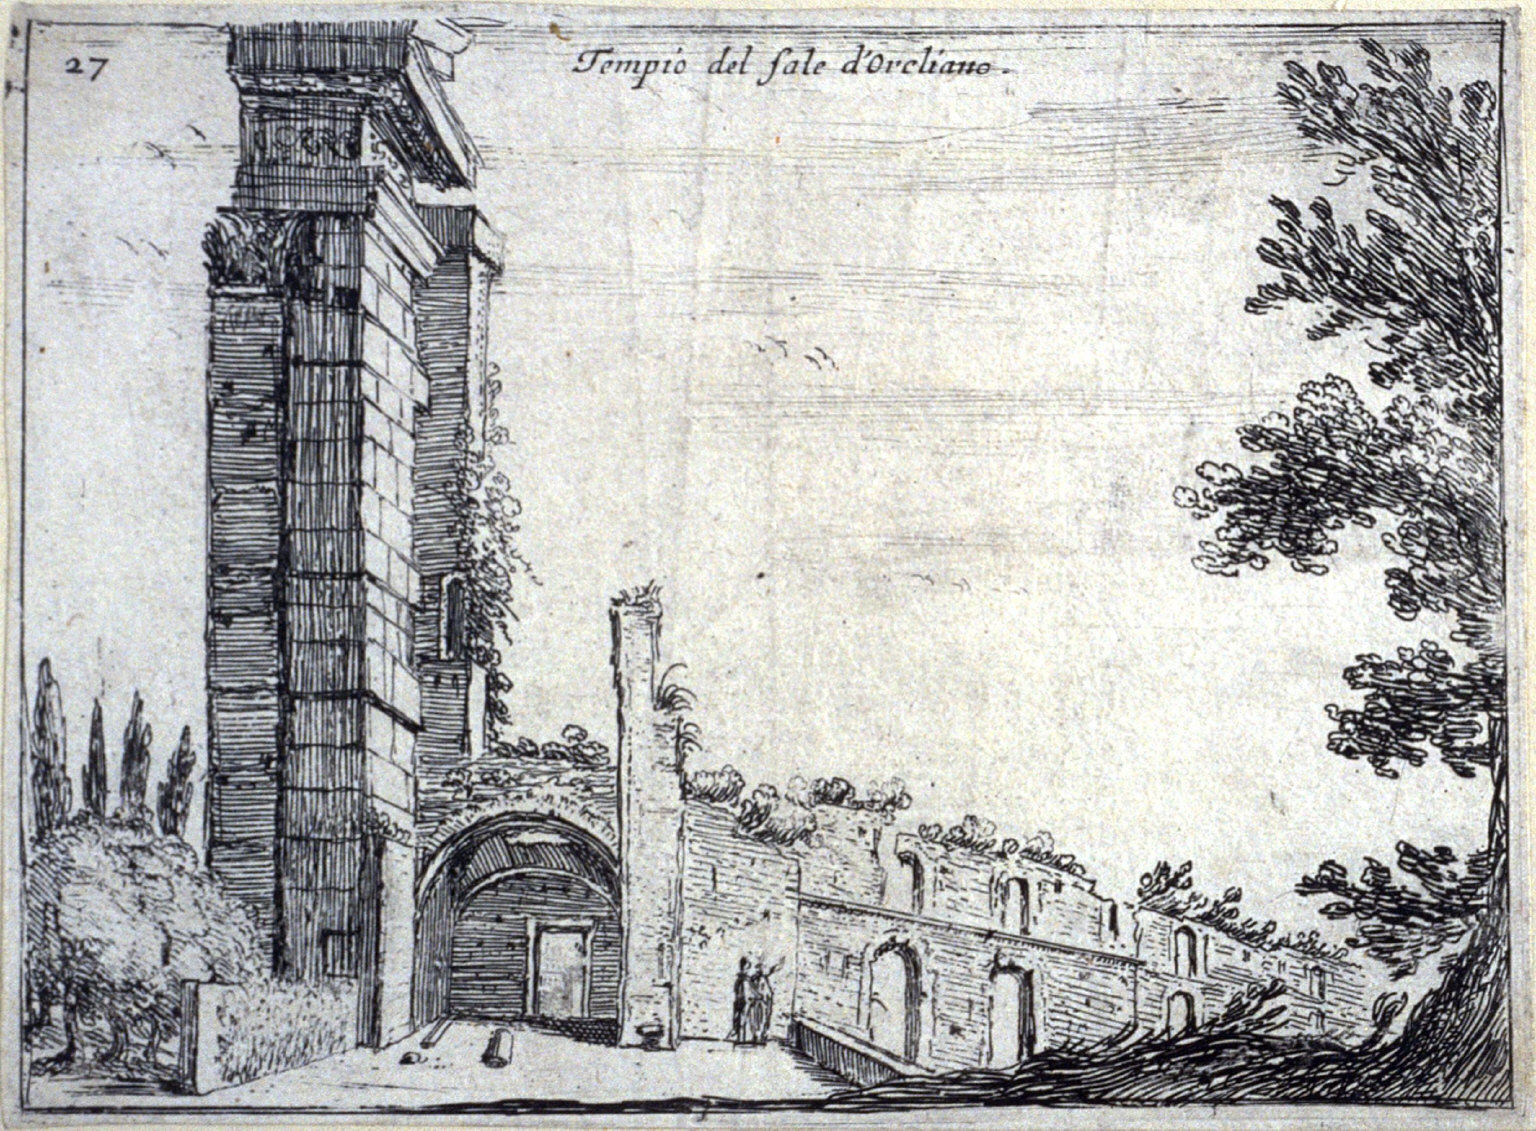 Temple del sole dOreliano (Aurelian Temple of the Sun), pl. 27 from the series Alcune vedute et prospettive di luoghi dishabitati di Roma (Some Views and Perspectives of the Uninhabited Places of Rome)